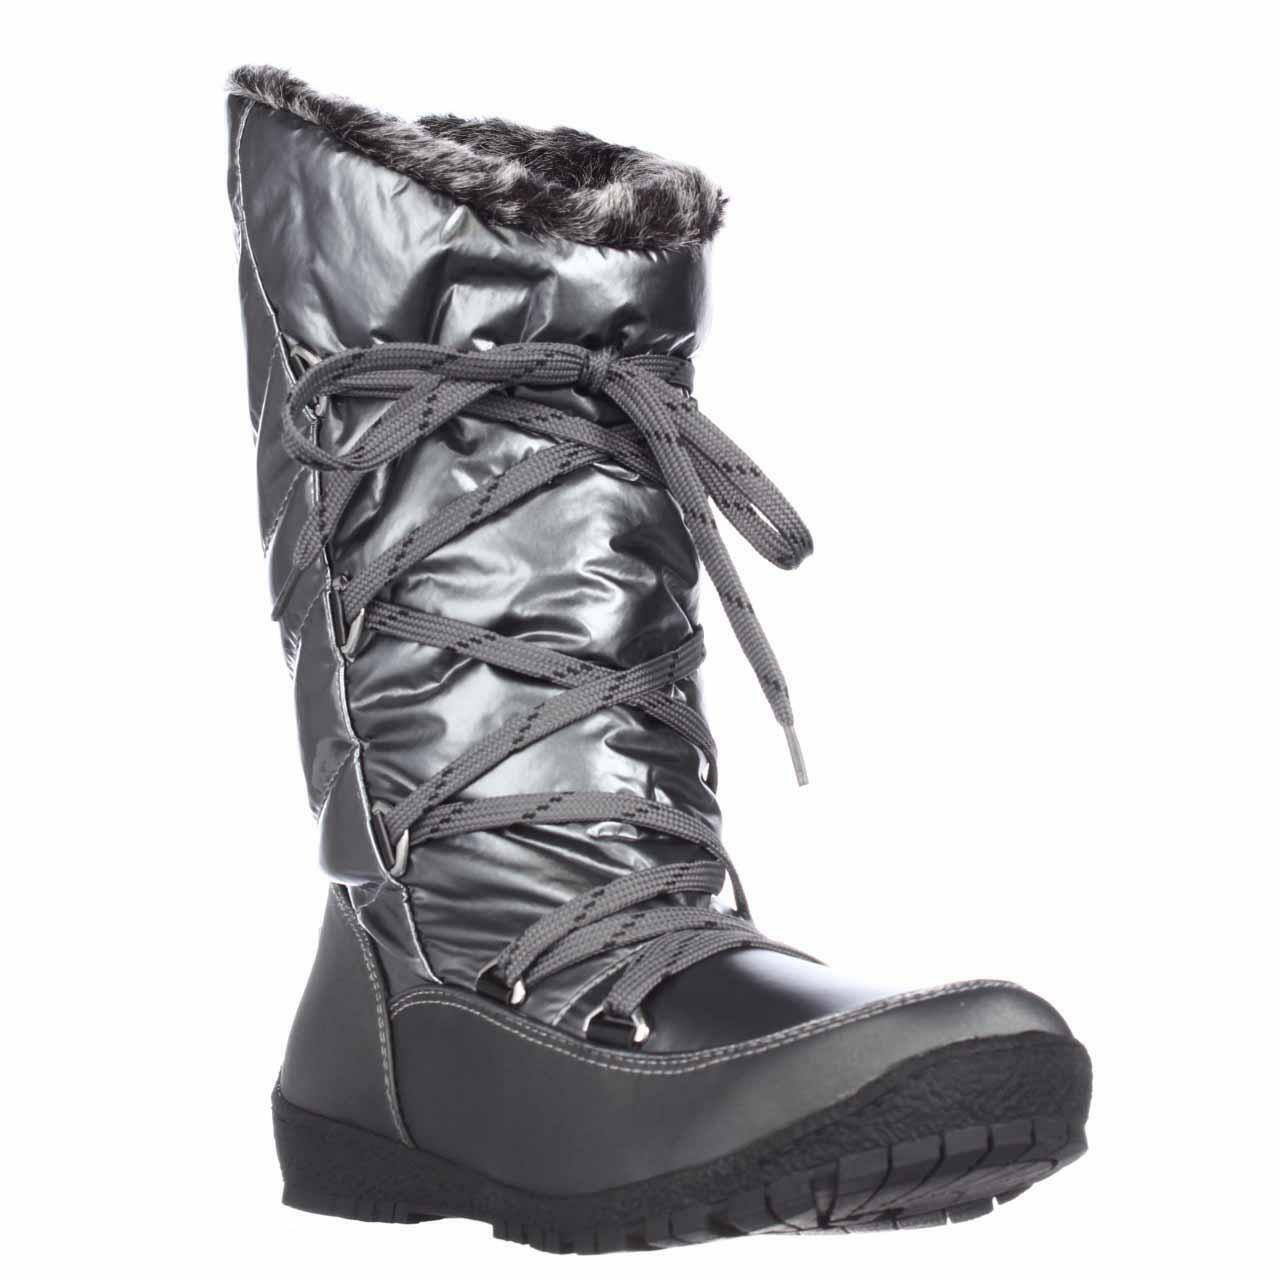 Sporto® Charles Waterproof Lace-Up Mid-Calf Quilted Boot Pewter 9.5 M